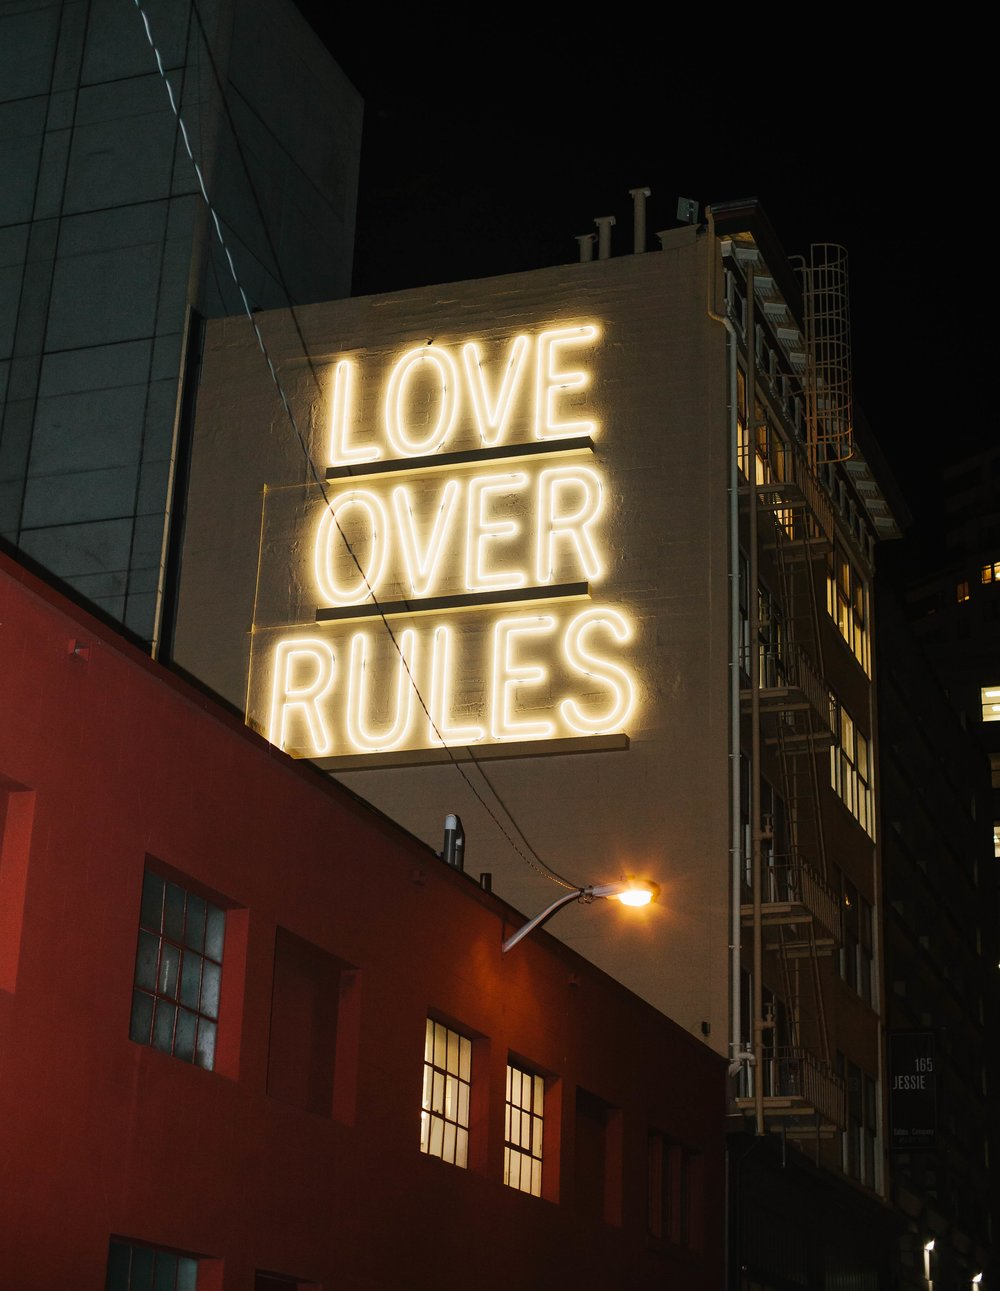 LOVE OVER RULES  by Hank Willis Thomas. Photograph by Mariah Tiffany.